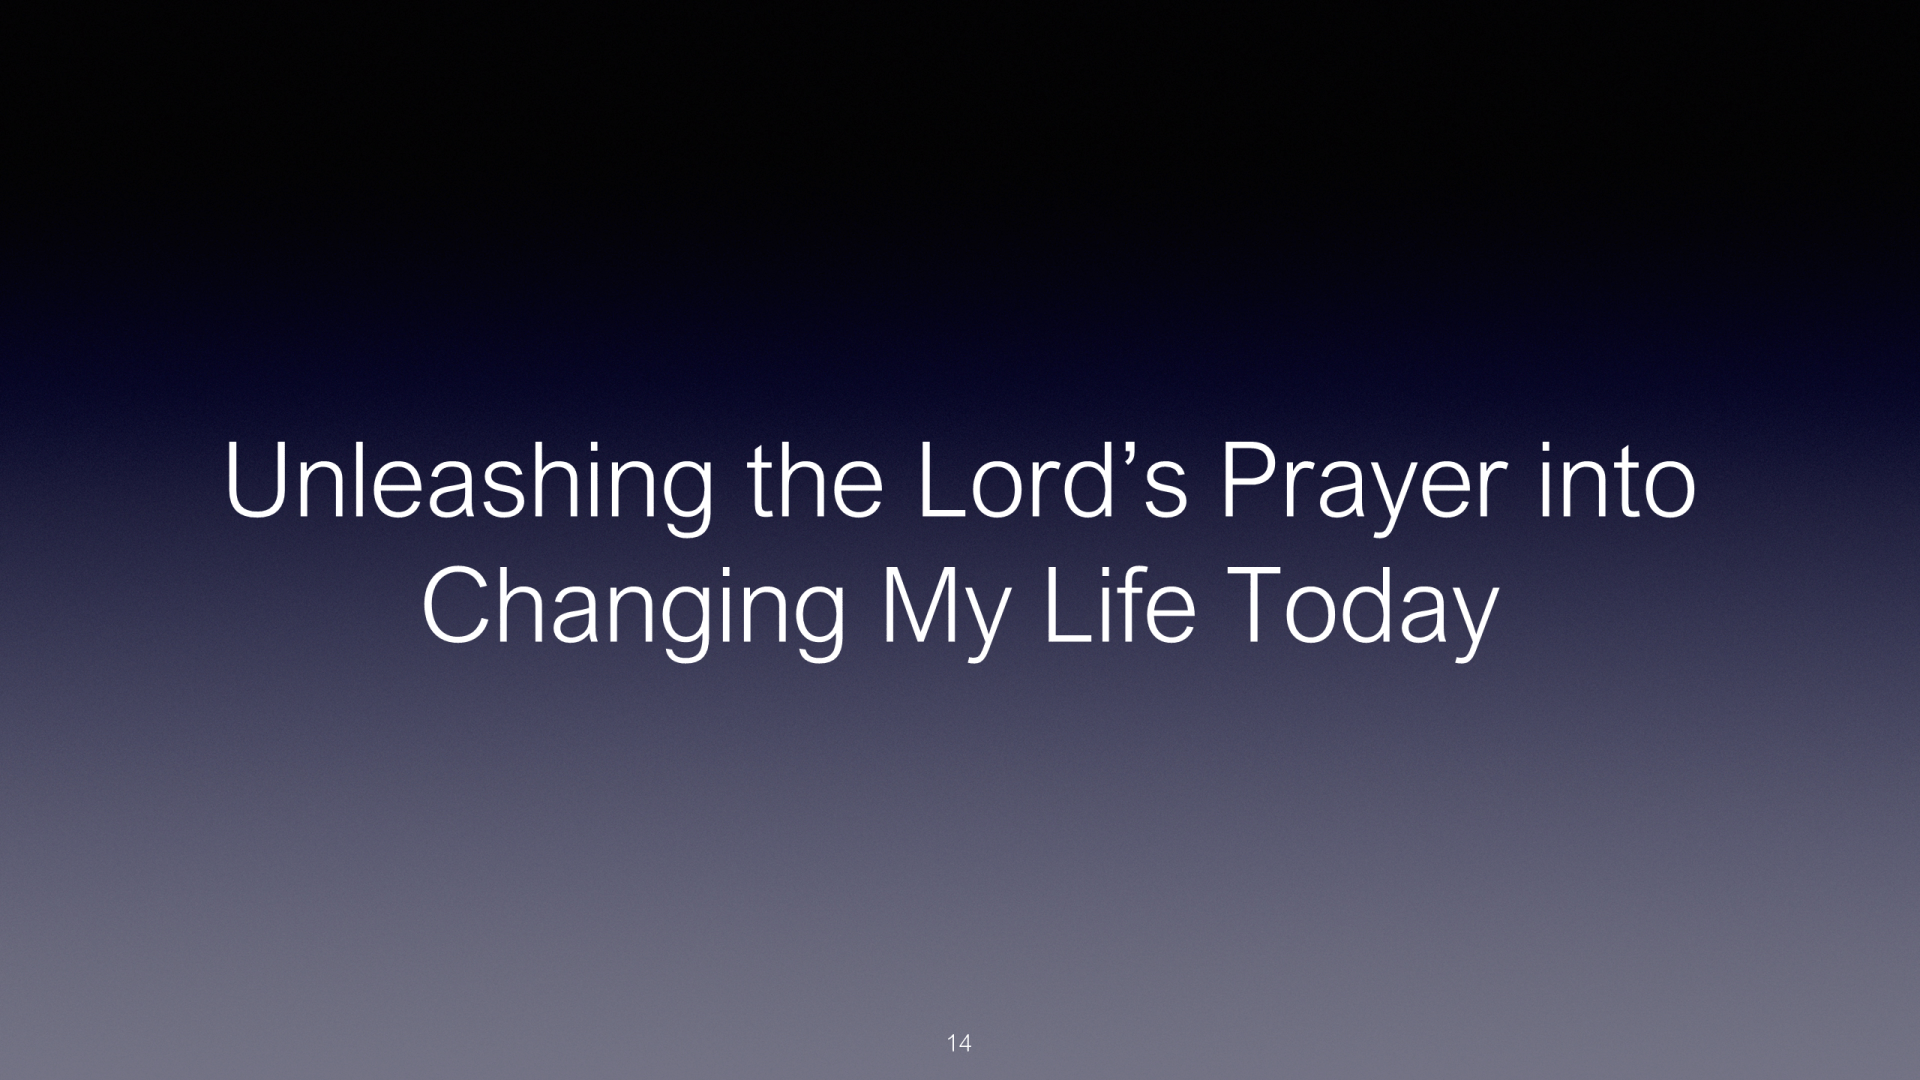 SWS-01 - Unleashing The Lord's Prayer Into Changing My Life Today (14)